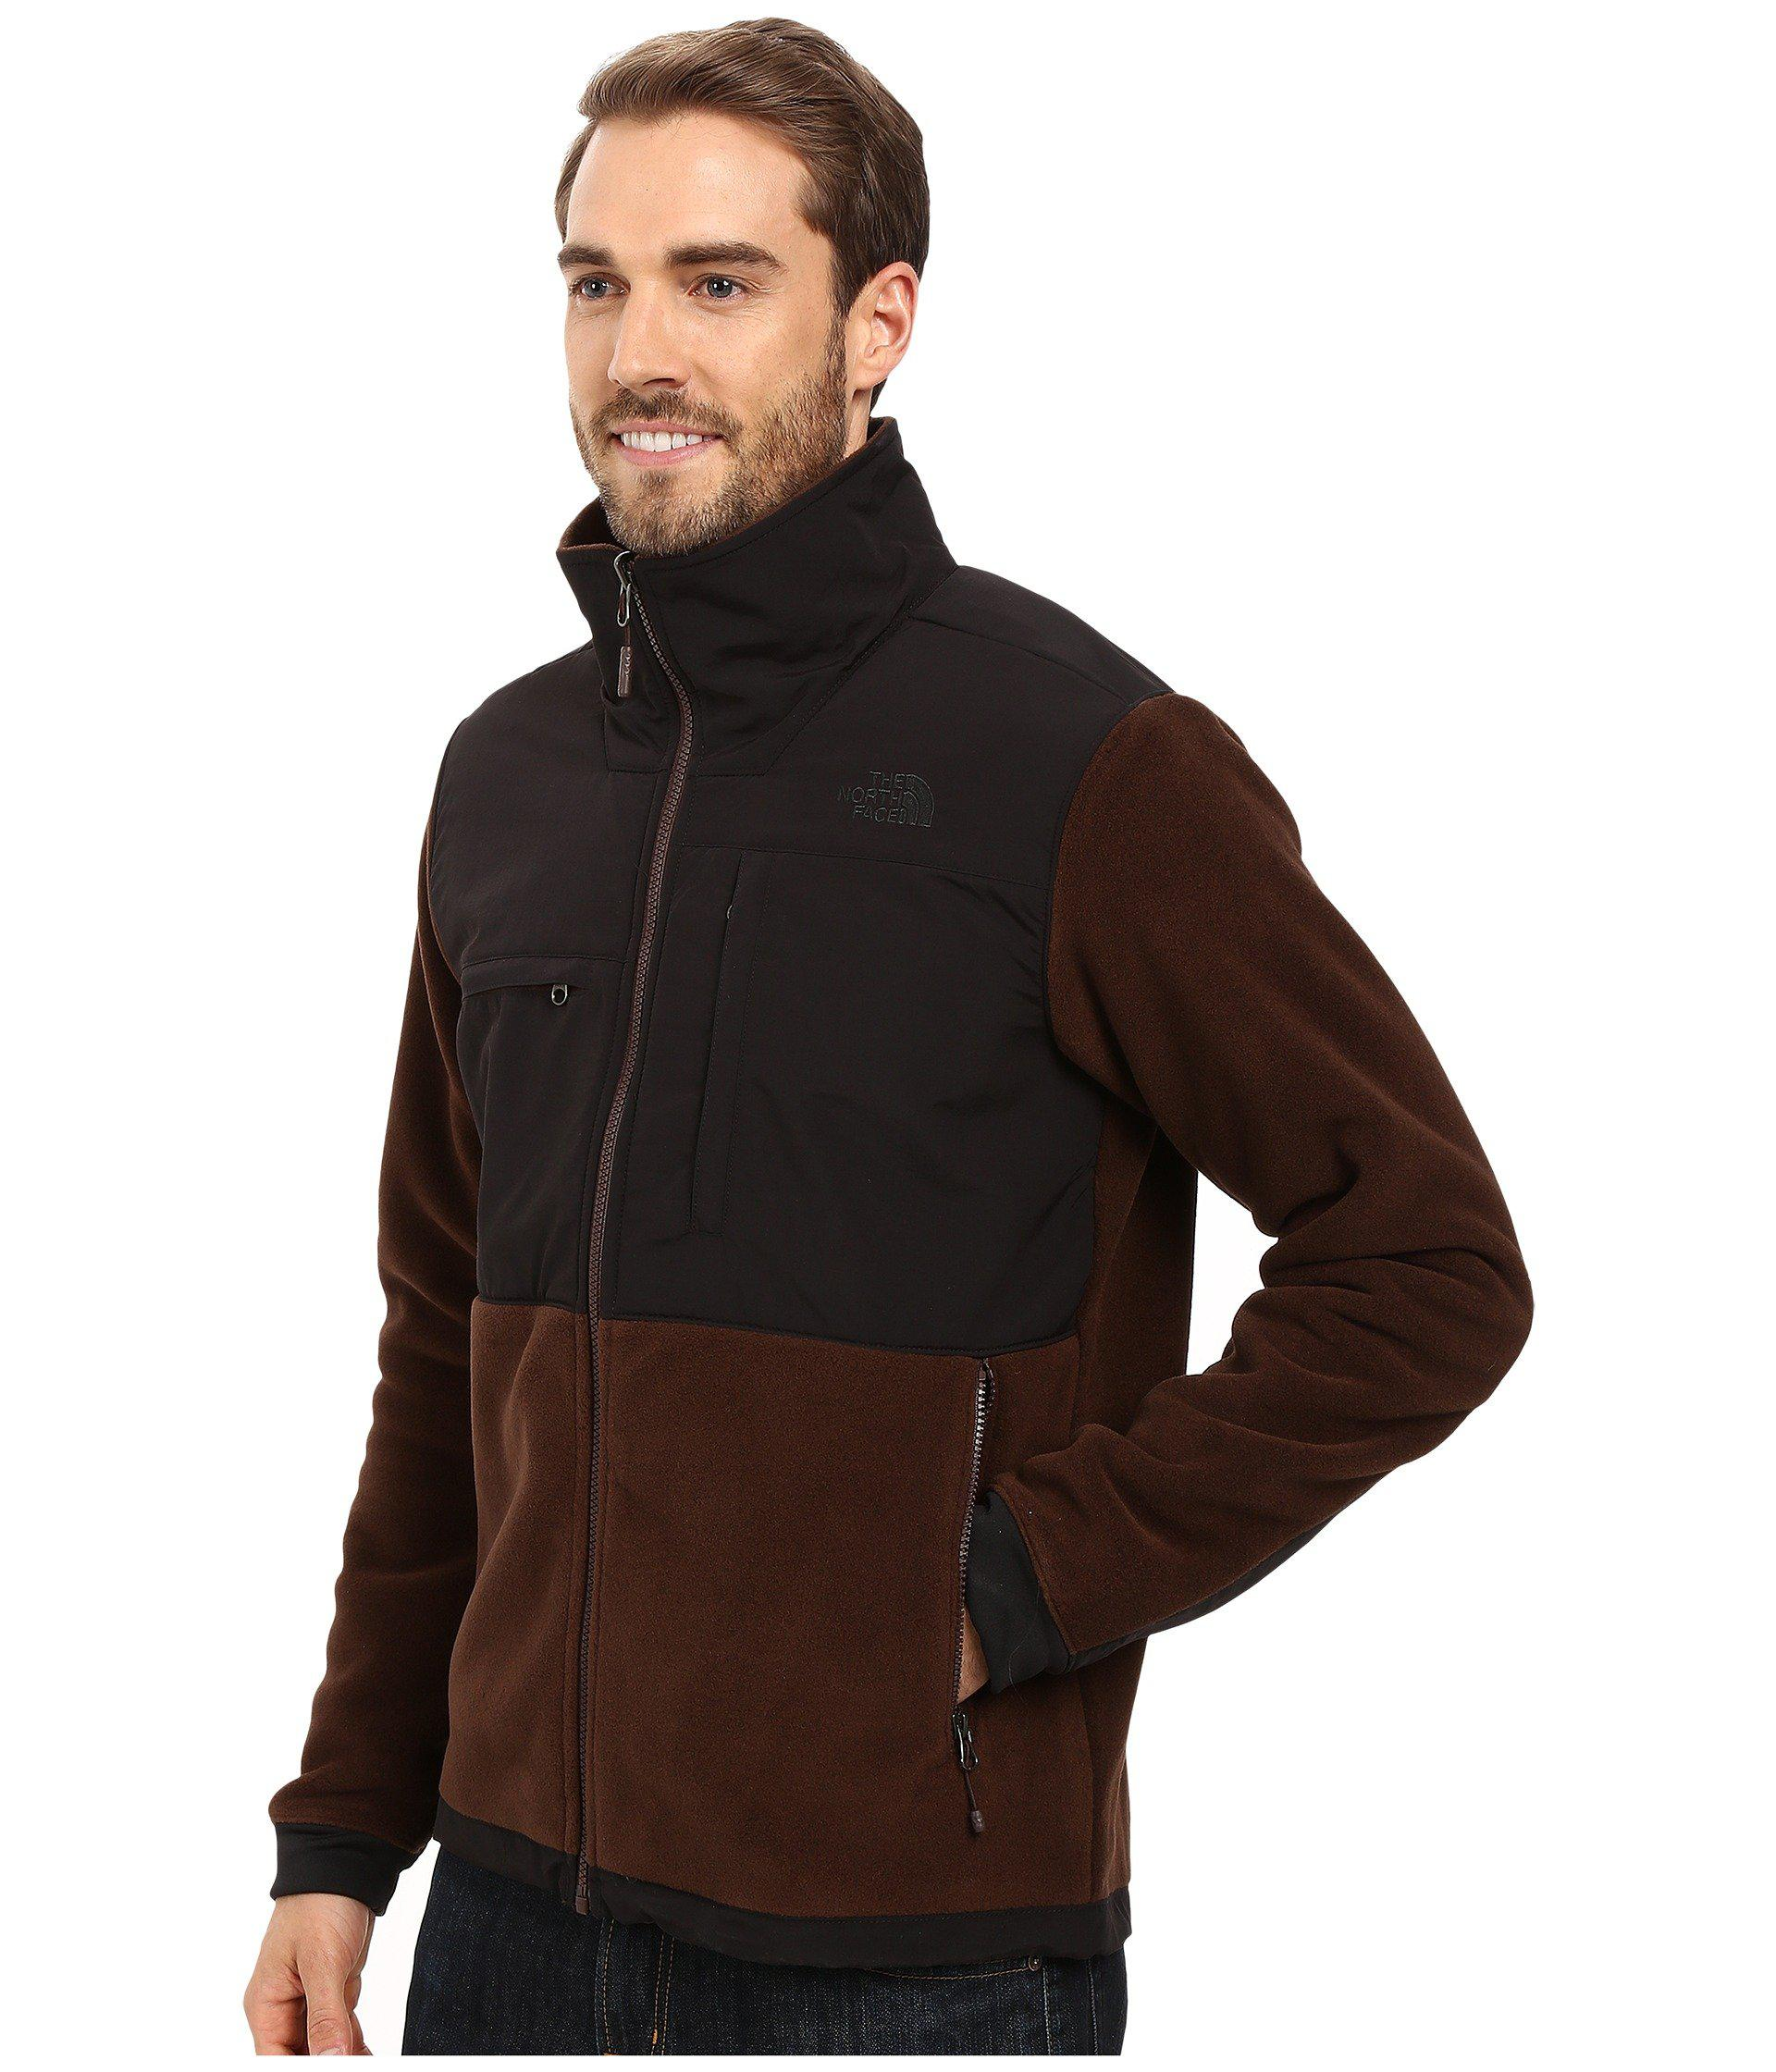 02b3ae01d The North Face Brown Denali 2 Jacket for men